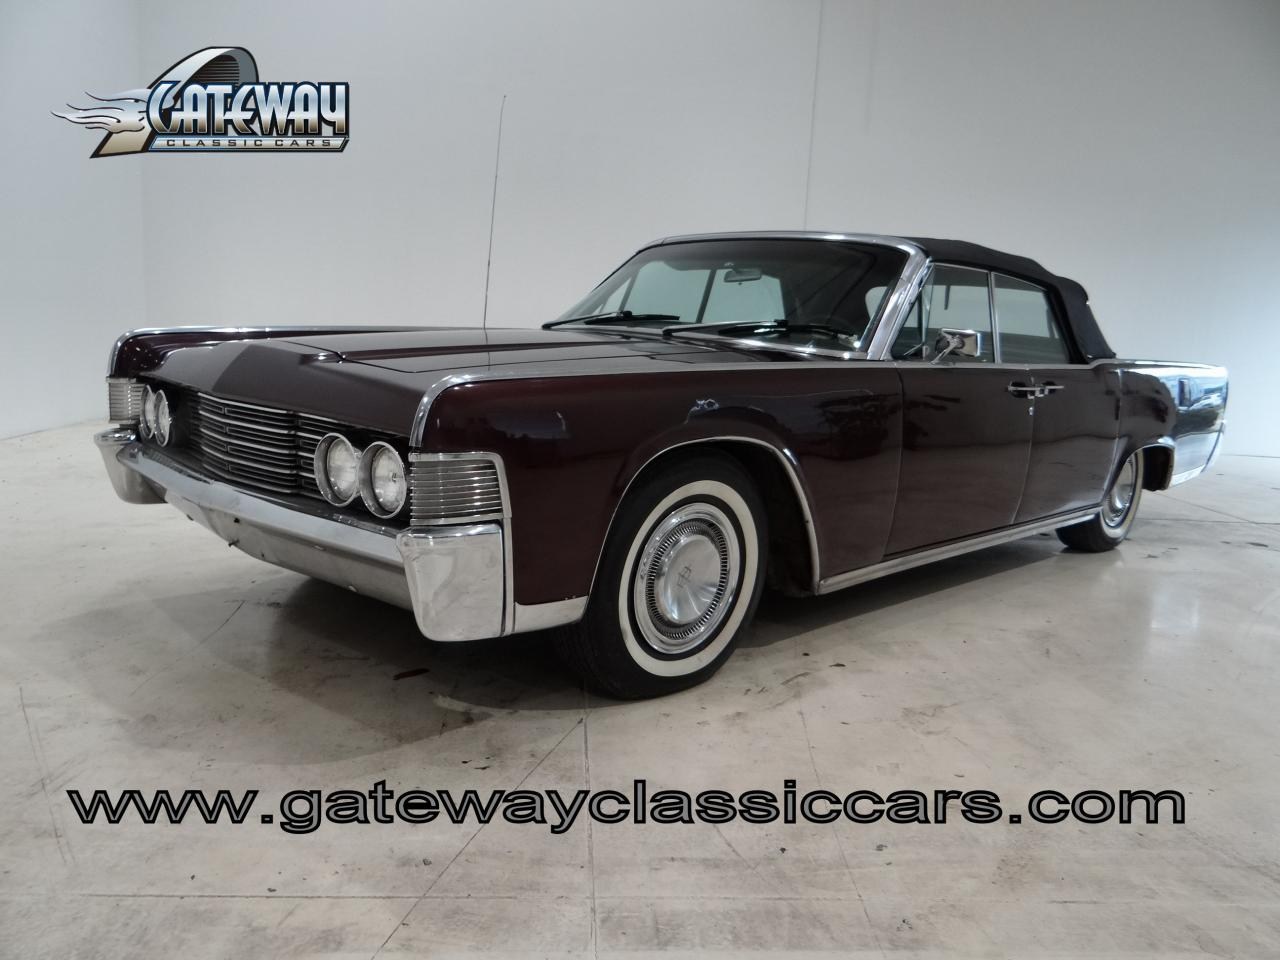 cubic inch of 1965 lincoln continental engine html. Black Bedroom Furniture Sets. Home Design Ideas